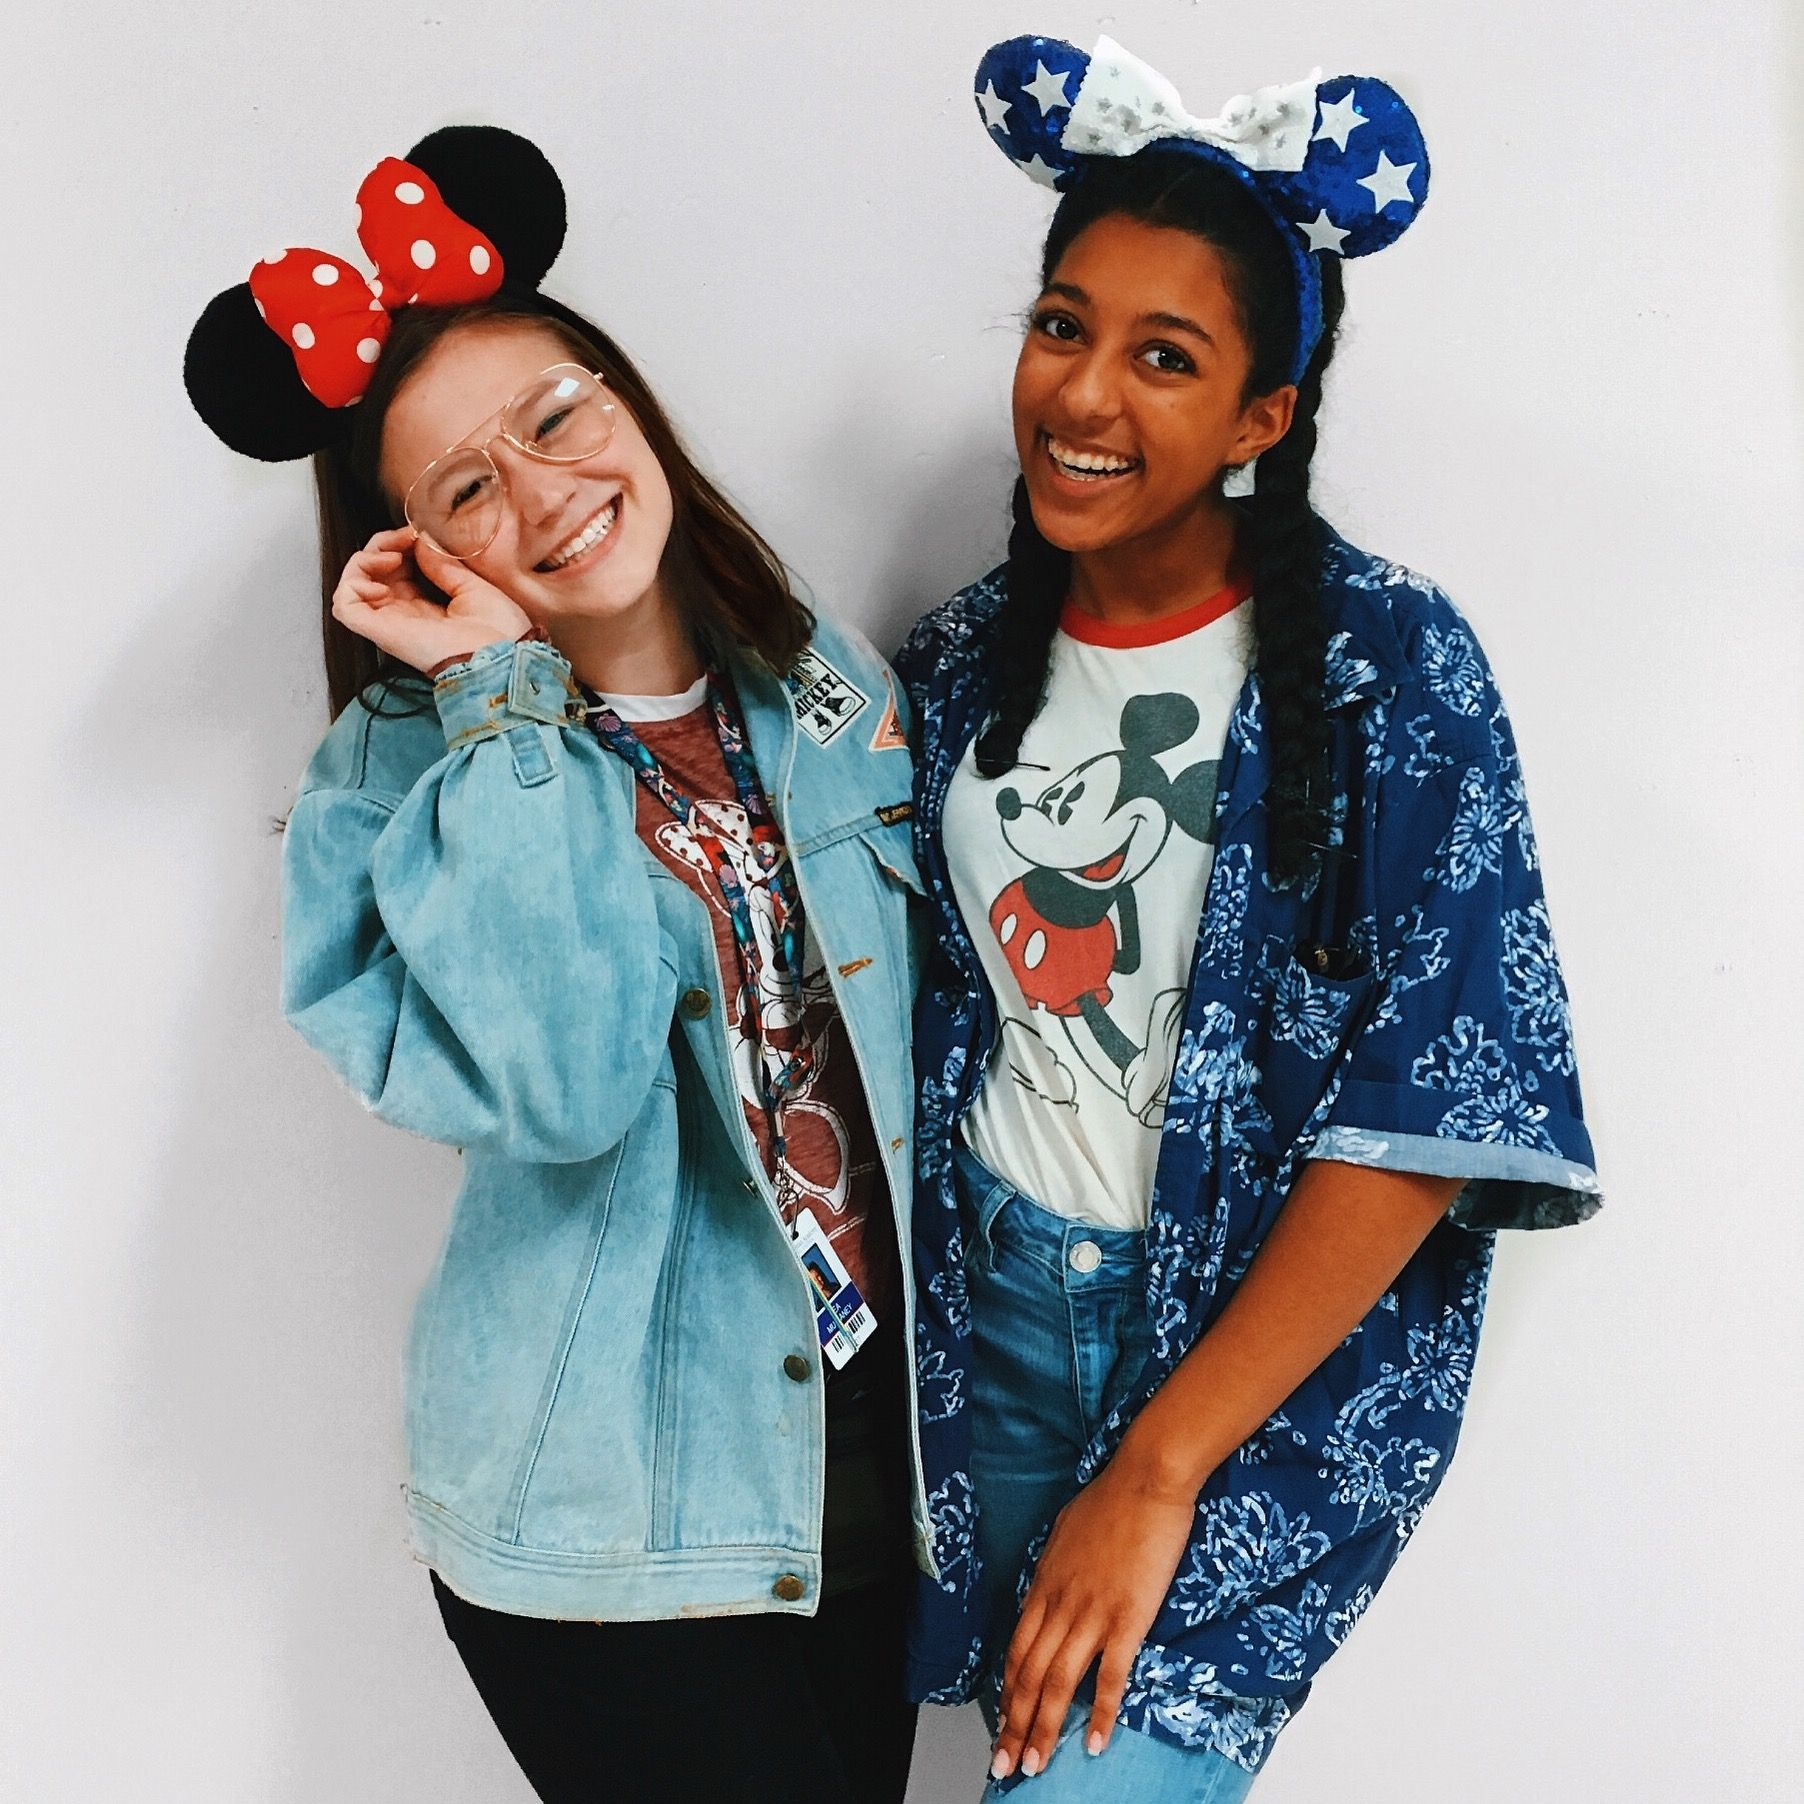 Disney tacky tourist costume. Spirit week. Ig:merllaney ...